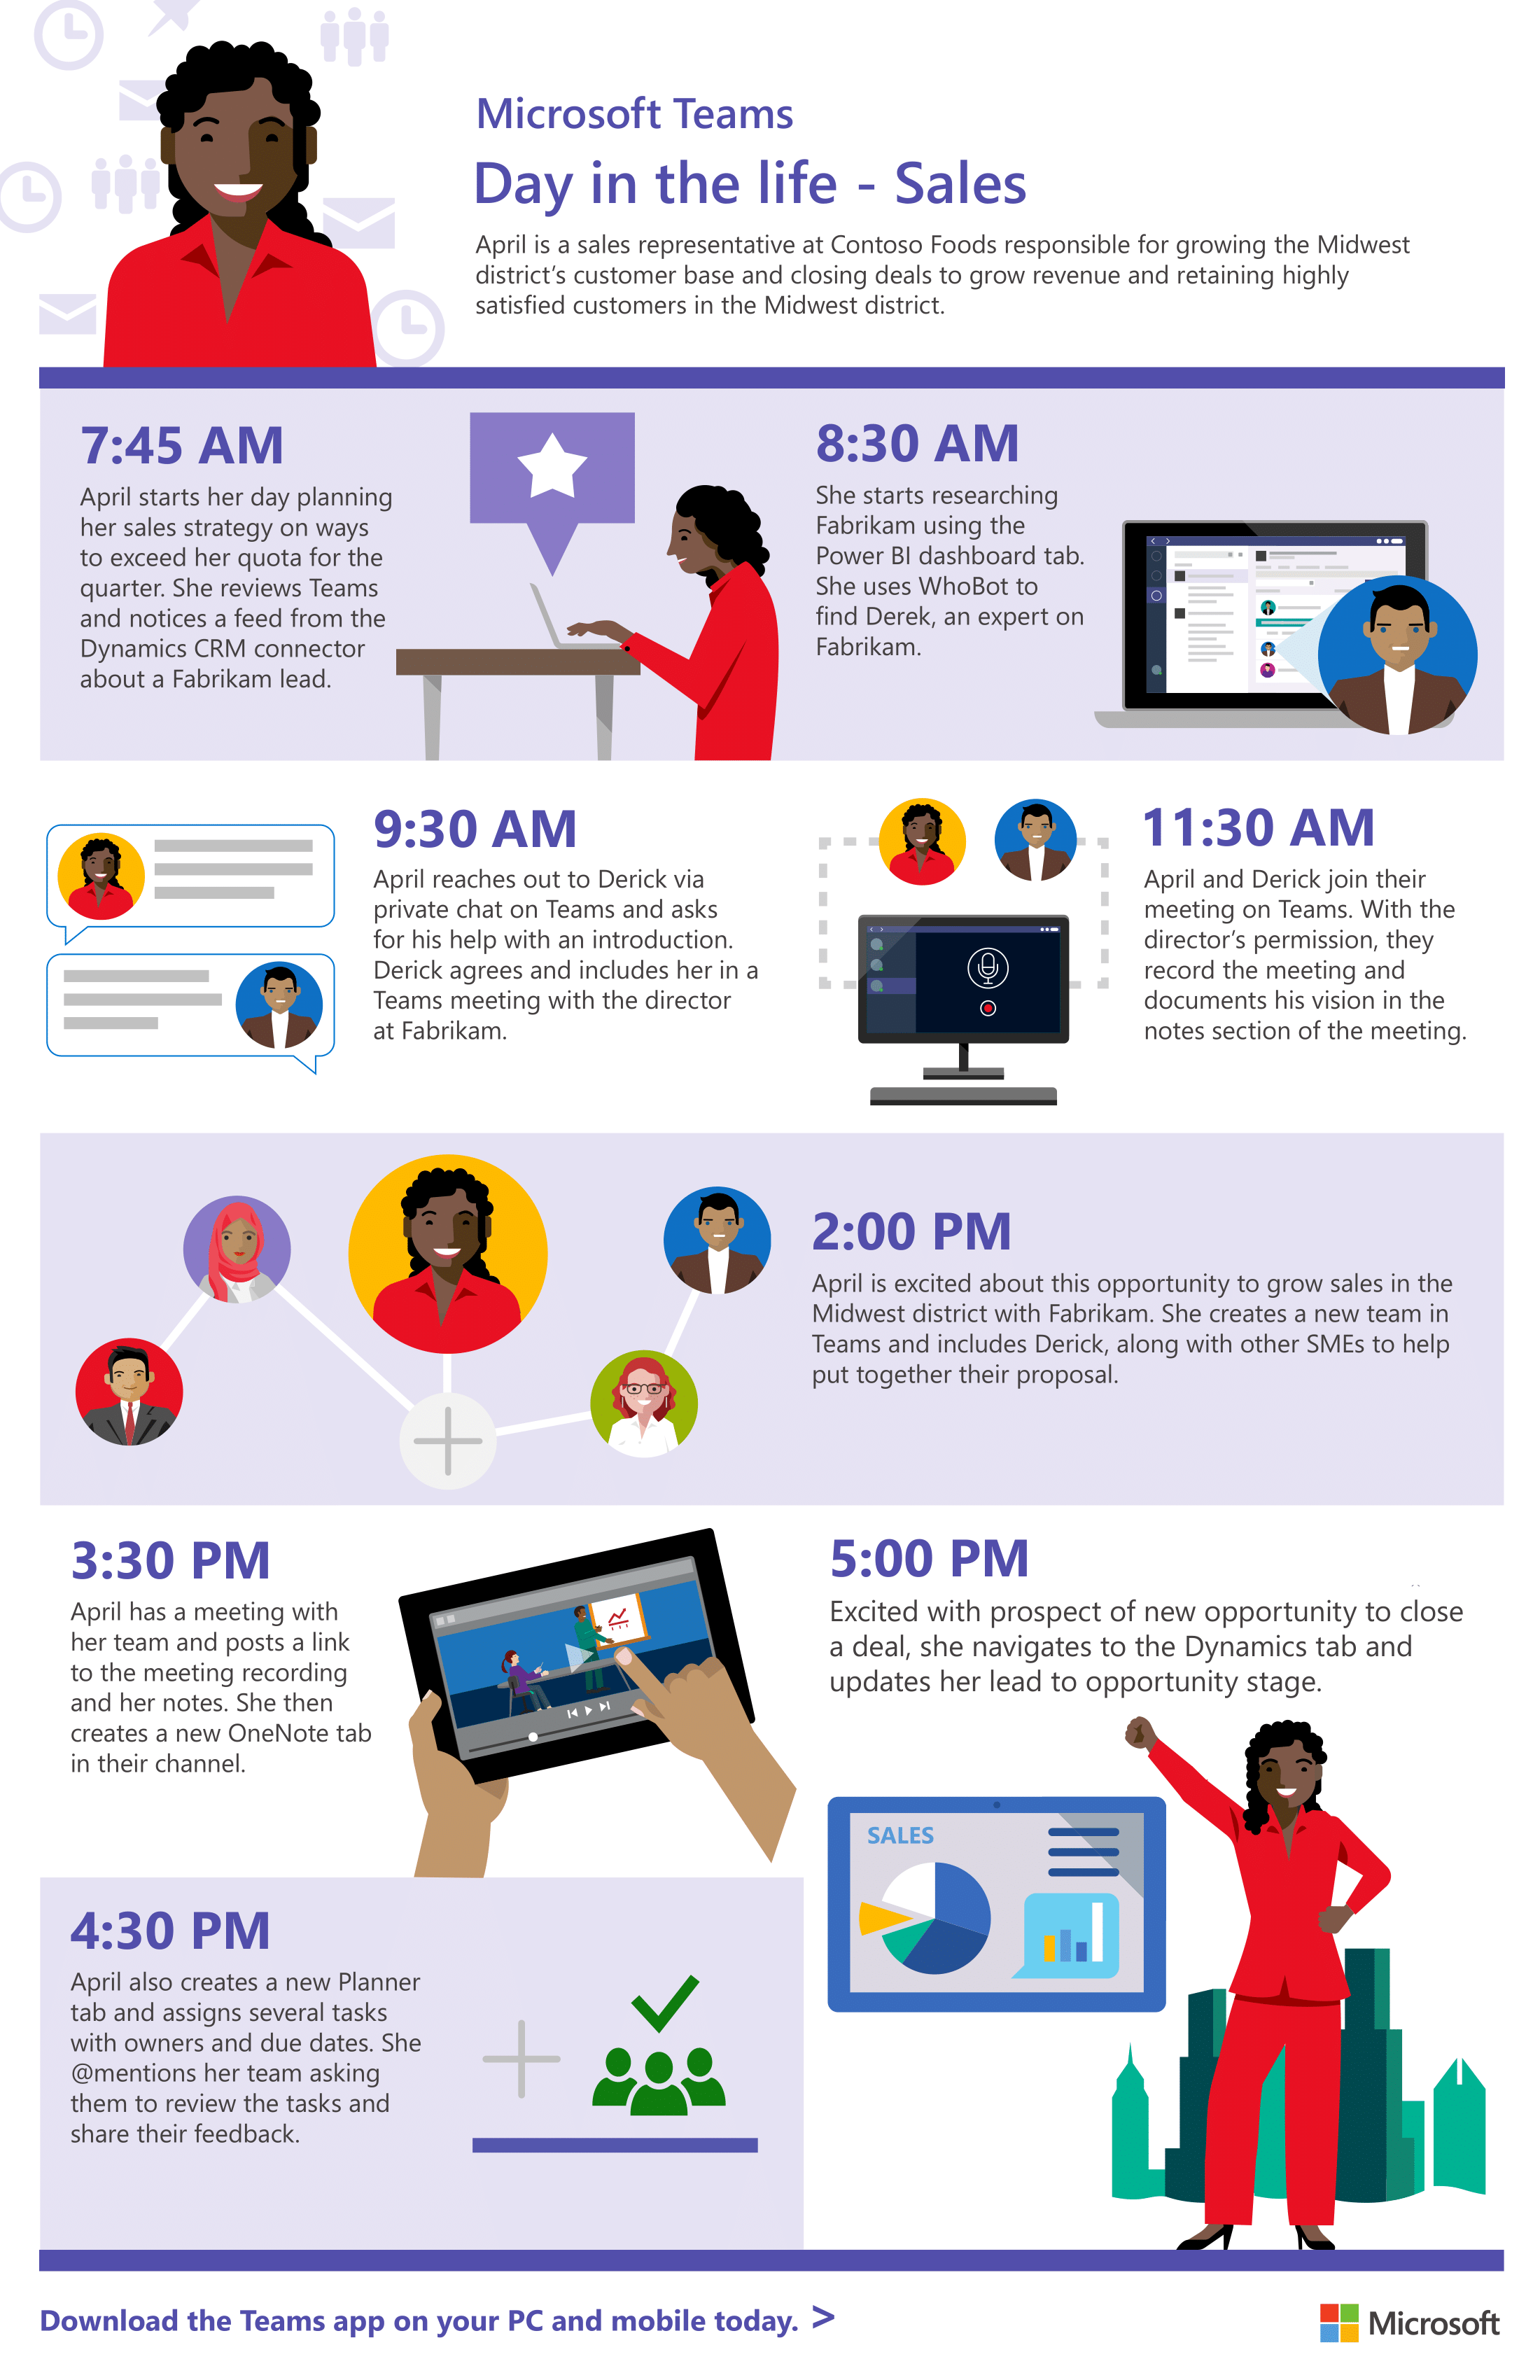 [INFOGRAPHIC] Day in the life - Sales (Microsoft Teams)